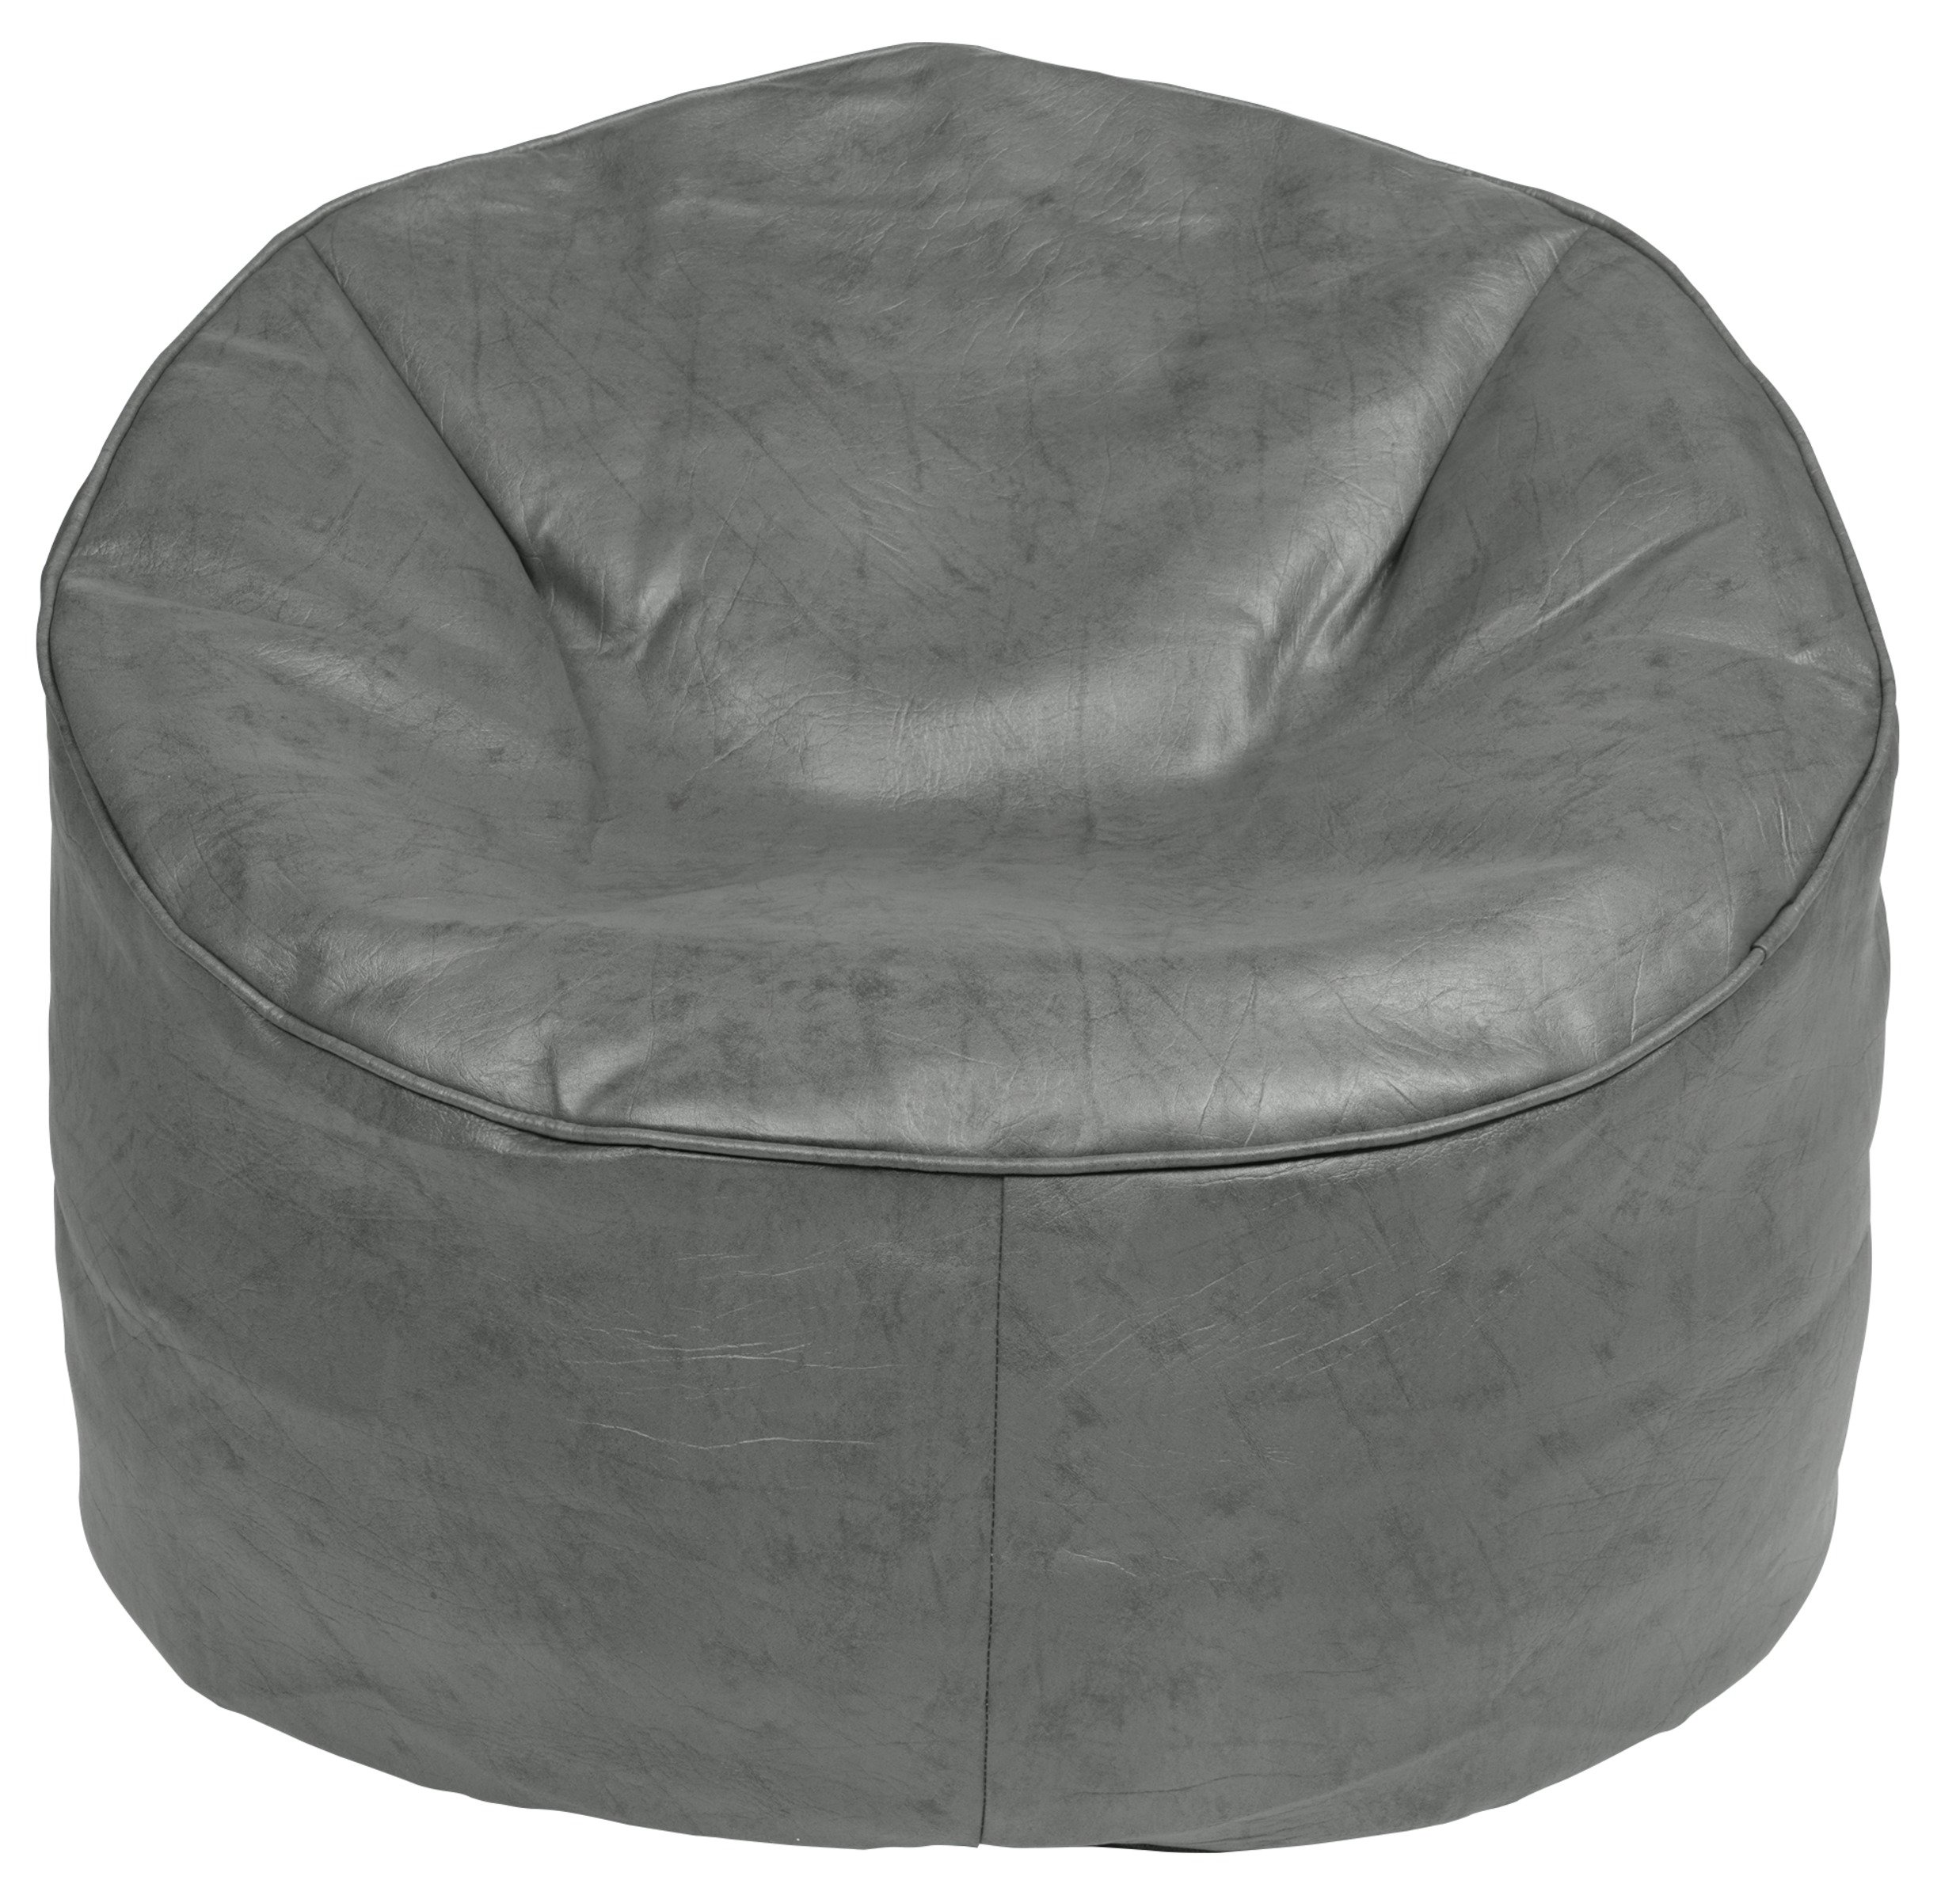 Argos Home Leather Effect Bean Bag Chair - Grey